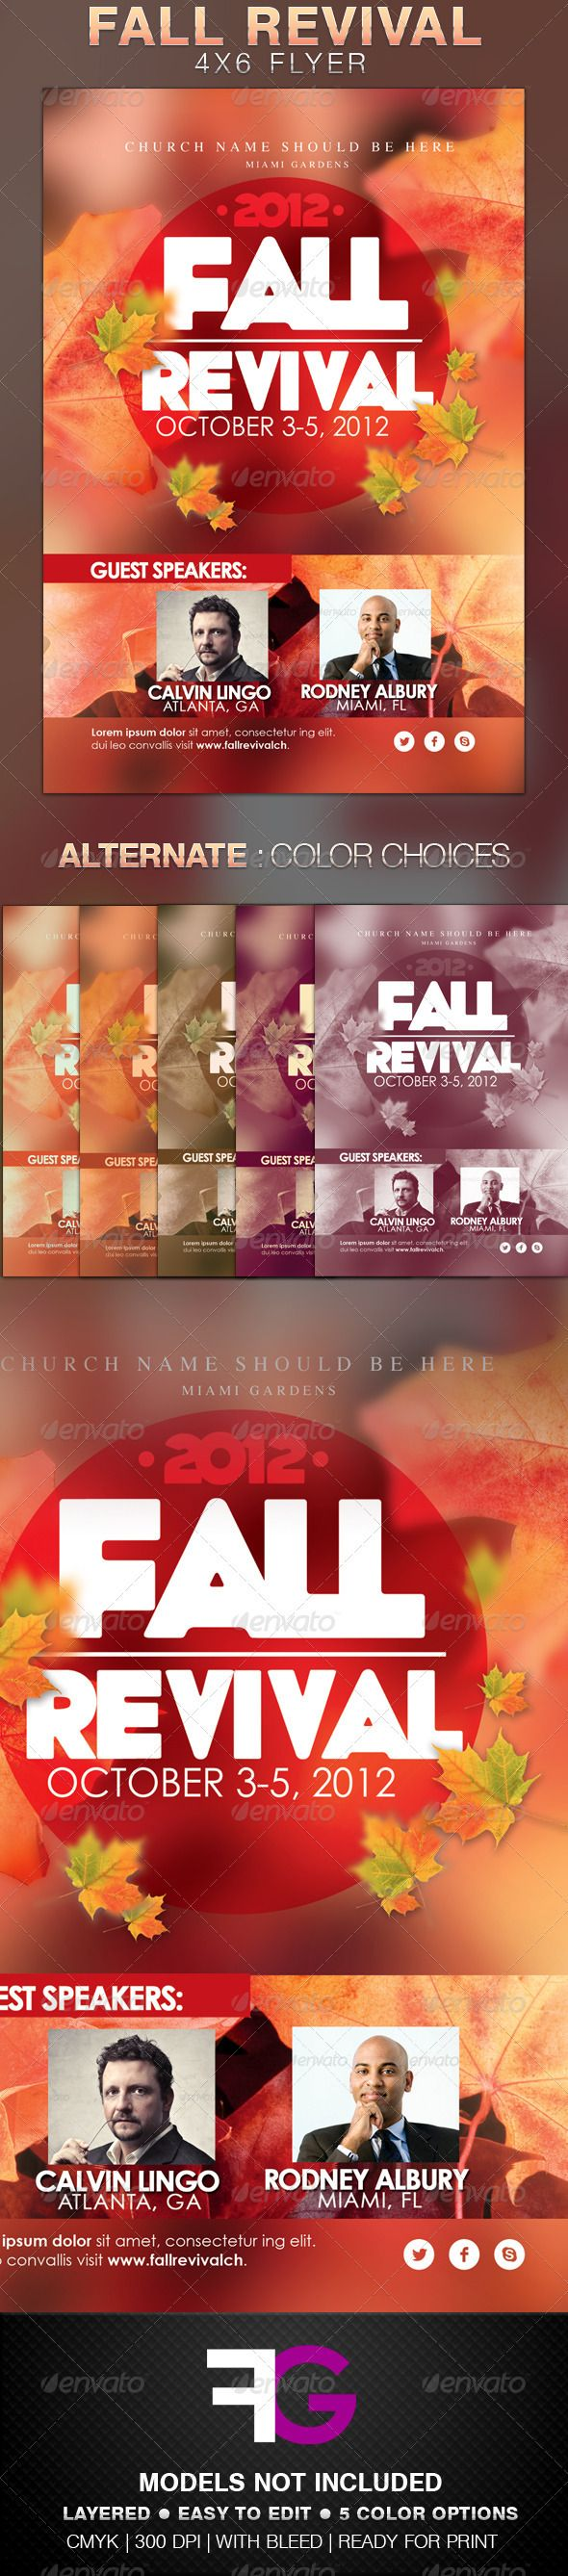 fall revival flyer template fonts church and colourful designs this fall revival flyer template is made for any church program or thanks giving celebration